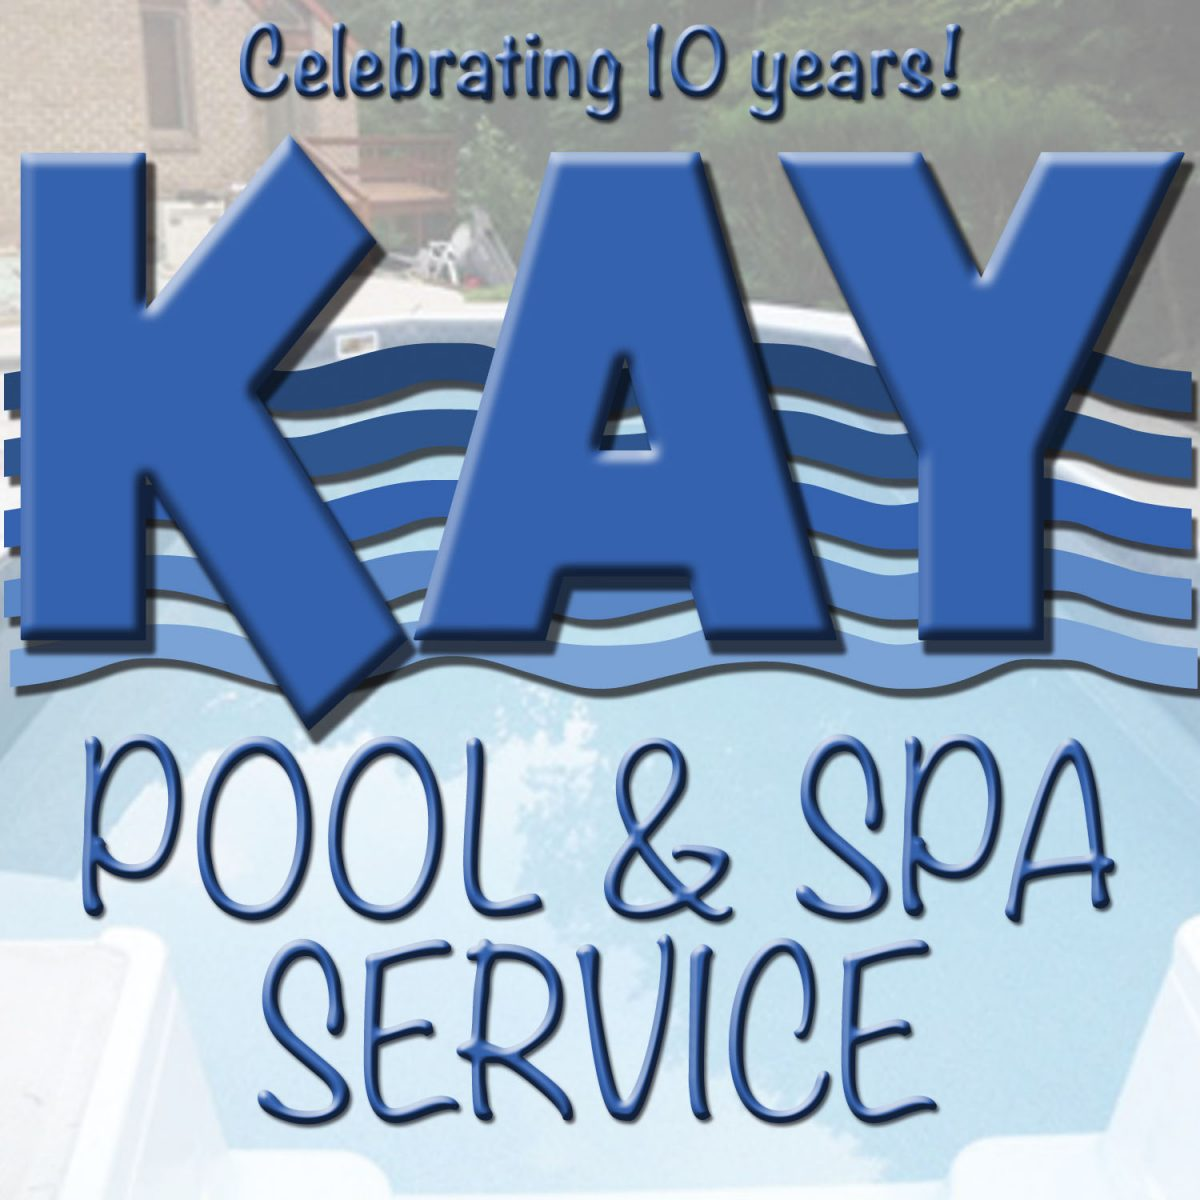 Kay Pool and Spa